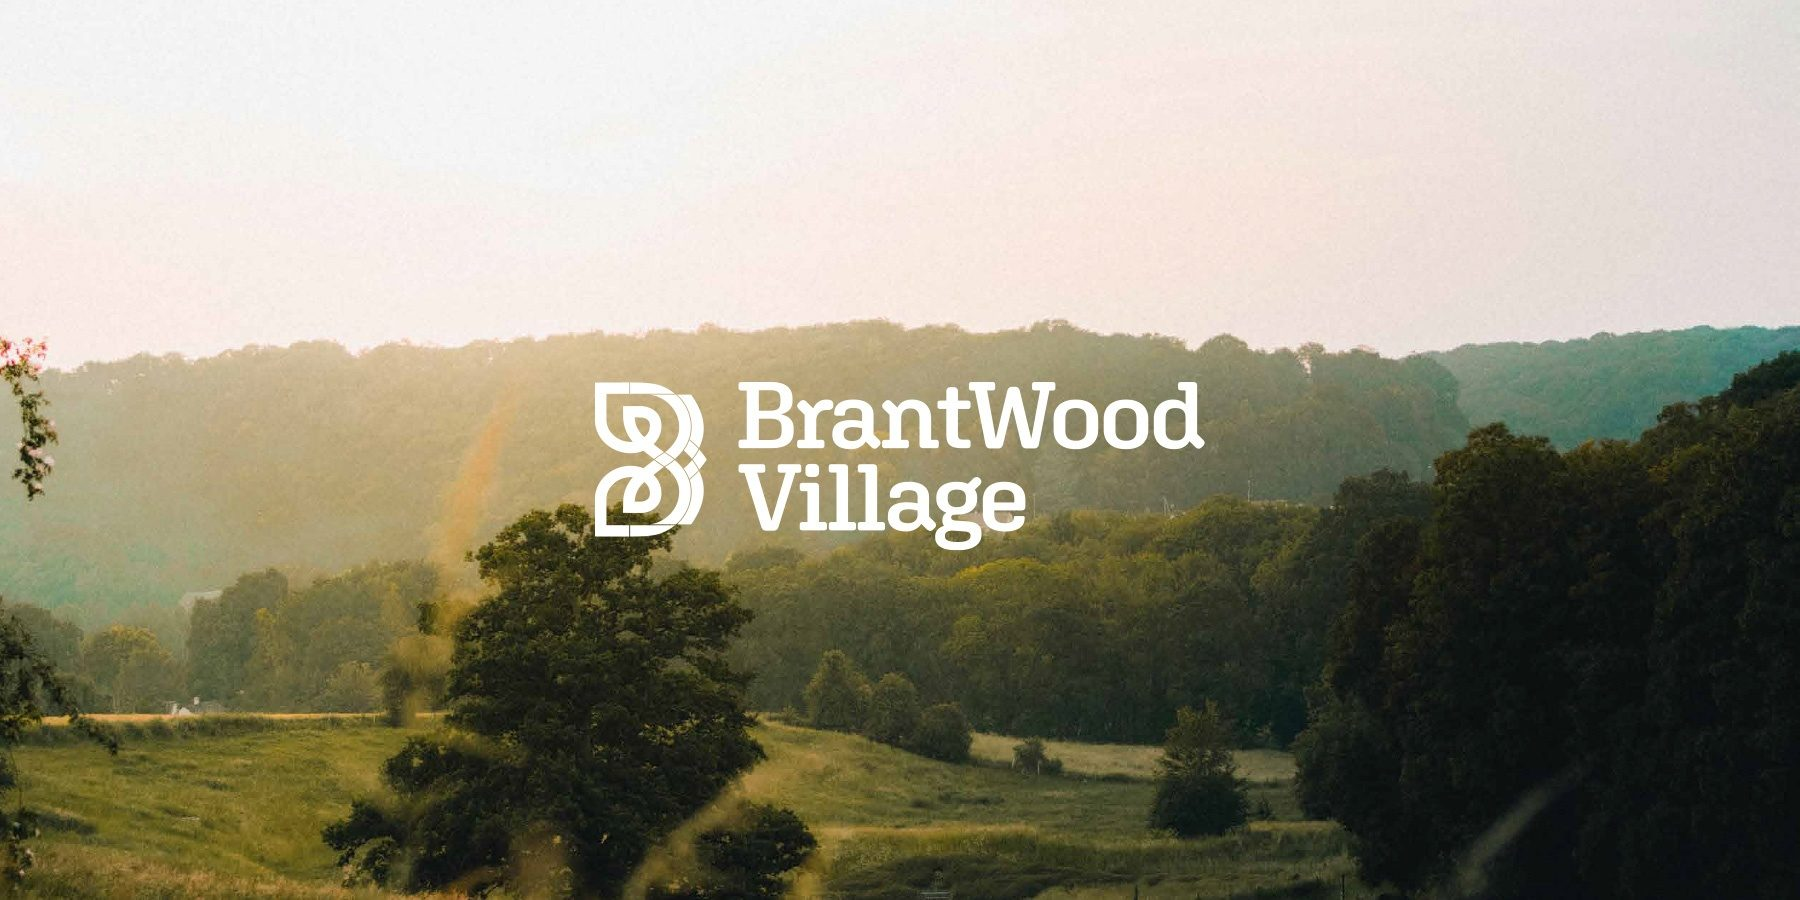 BrantWood Village banner image of a sunset valley with trees